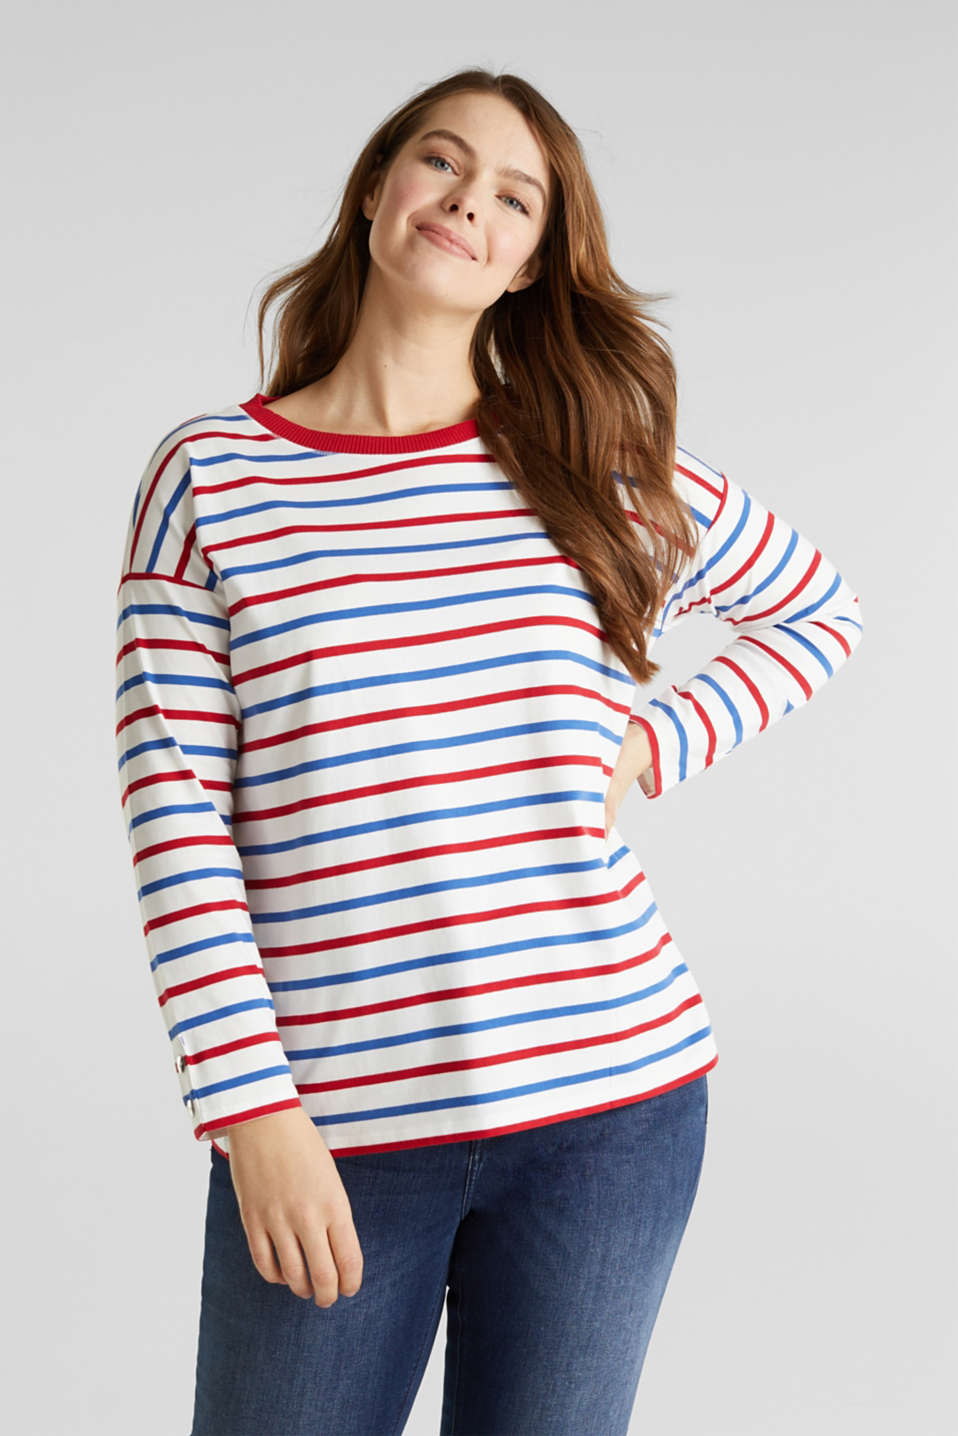 Esprit - CURVY striped long sleeve top, 100% organic cotton